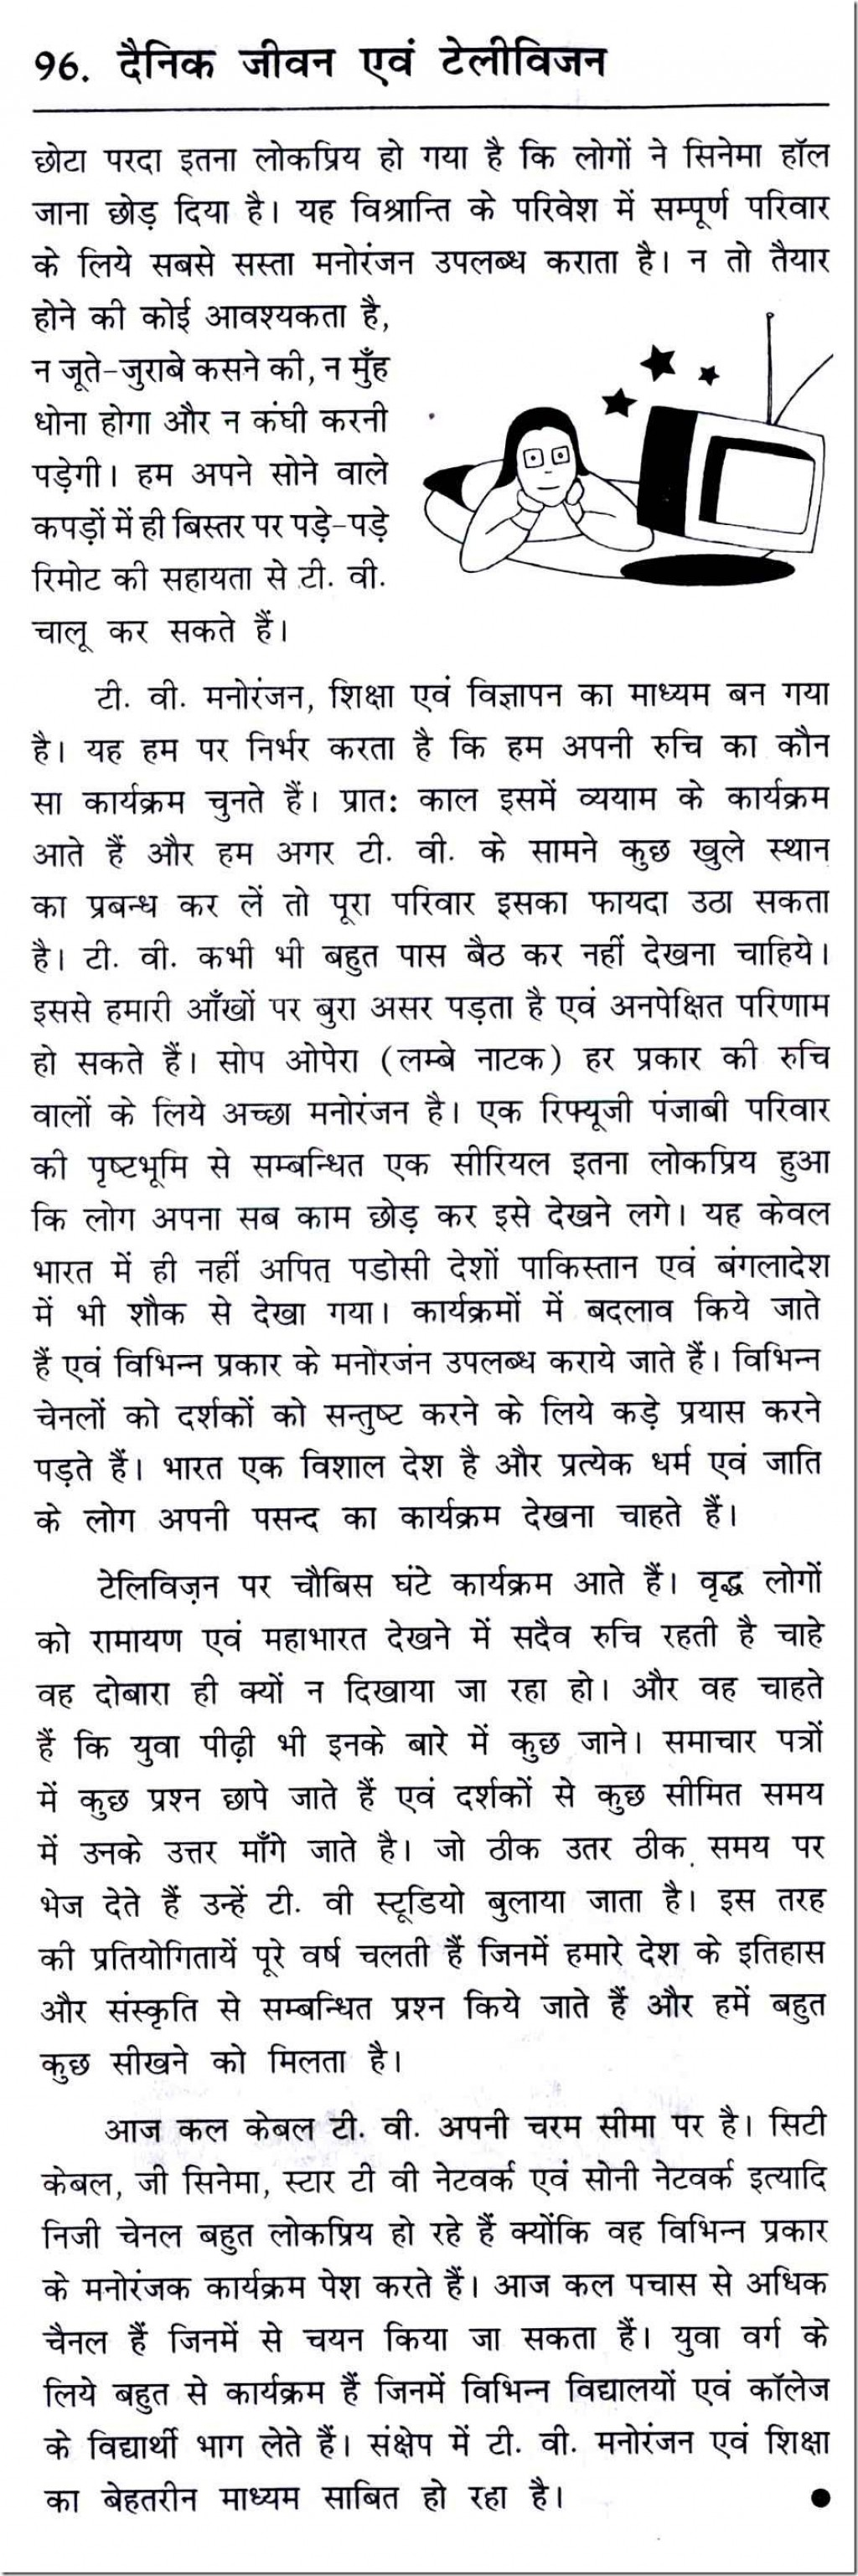 012 Essay Example 10098 Thumb Cleanliness In Sensational Hindi Is Godliness School Large